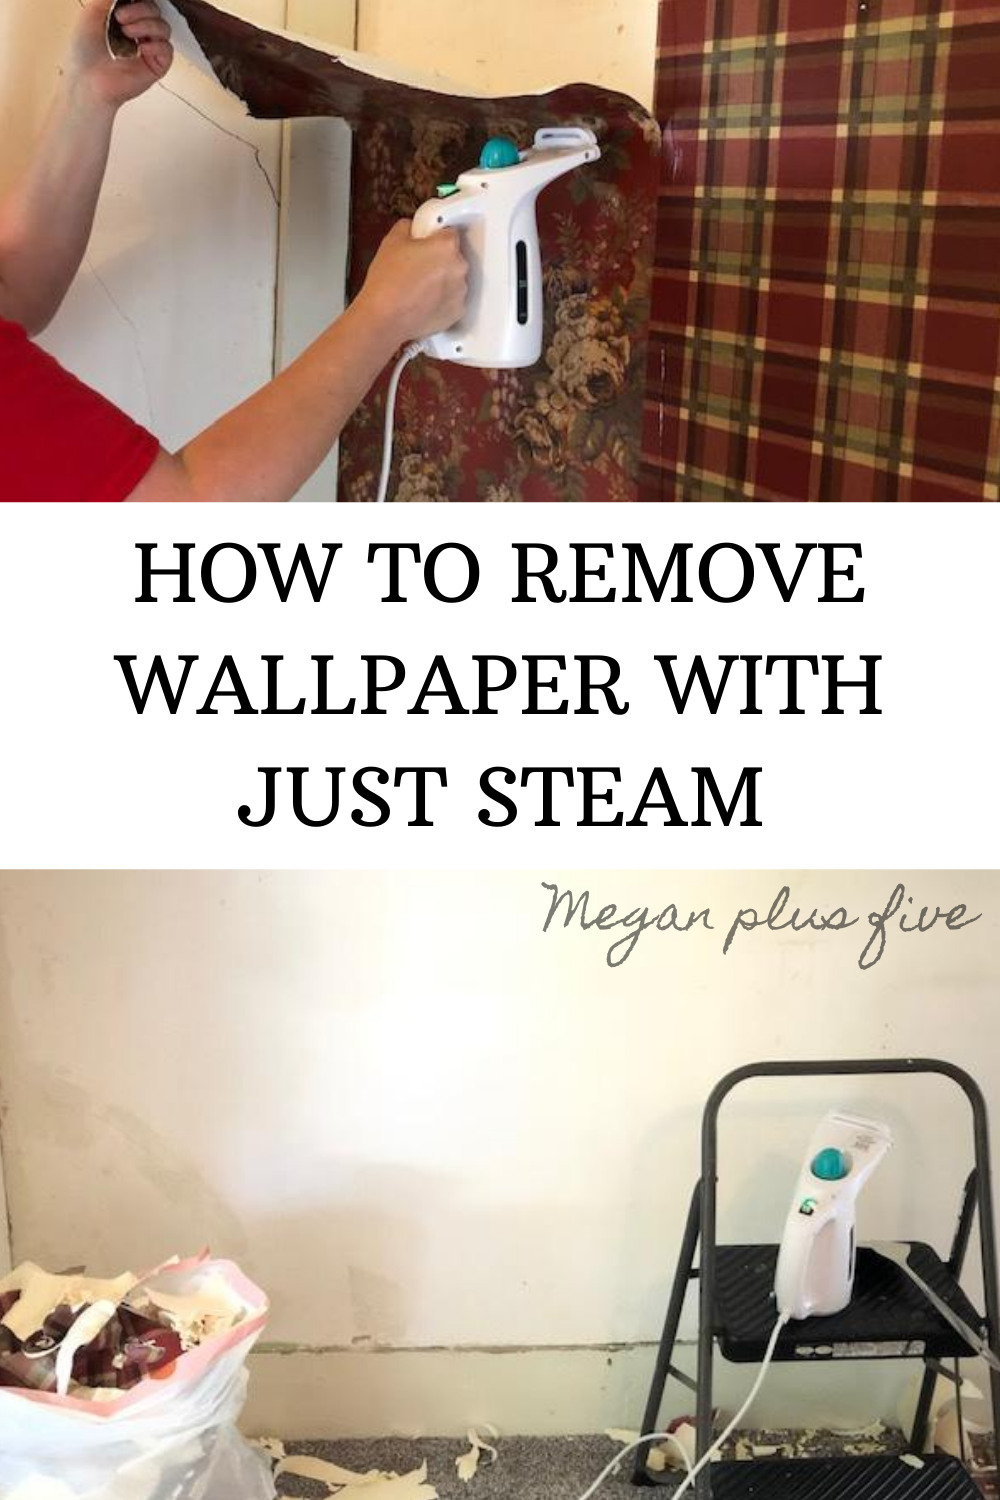 How to remove wallpaper easily without any chemicals or cleaners. Easiest way to take wall paper off the walls using a steamer for garments. No mess way to get wallpaper off of the walls.